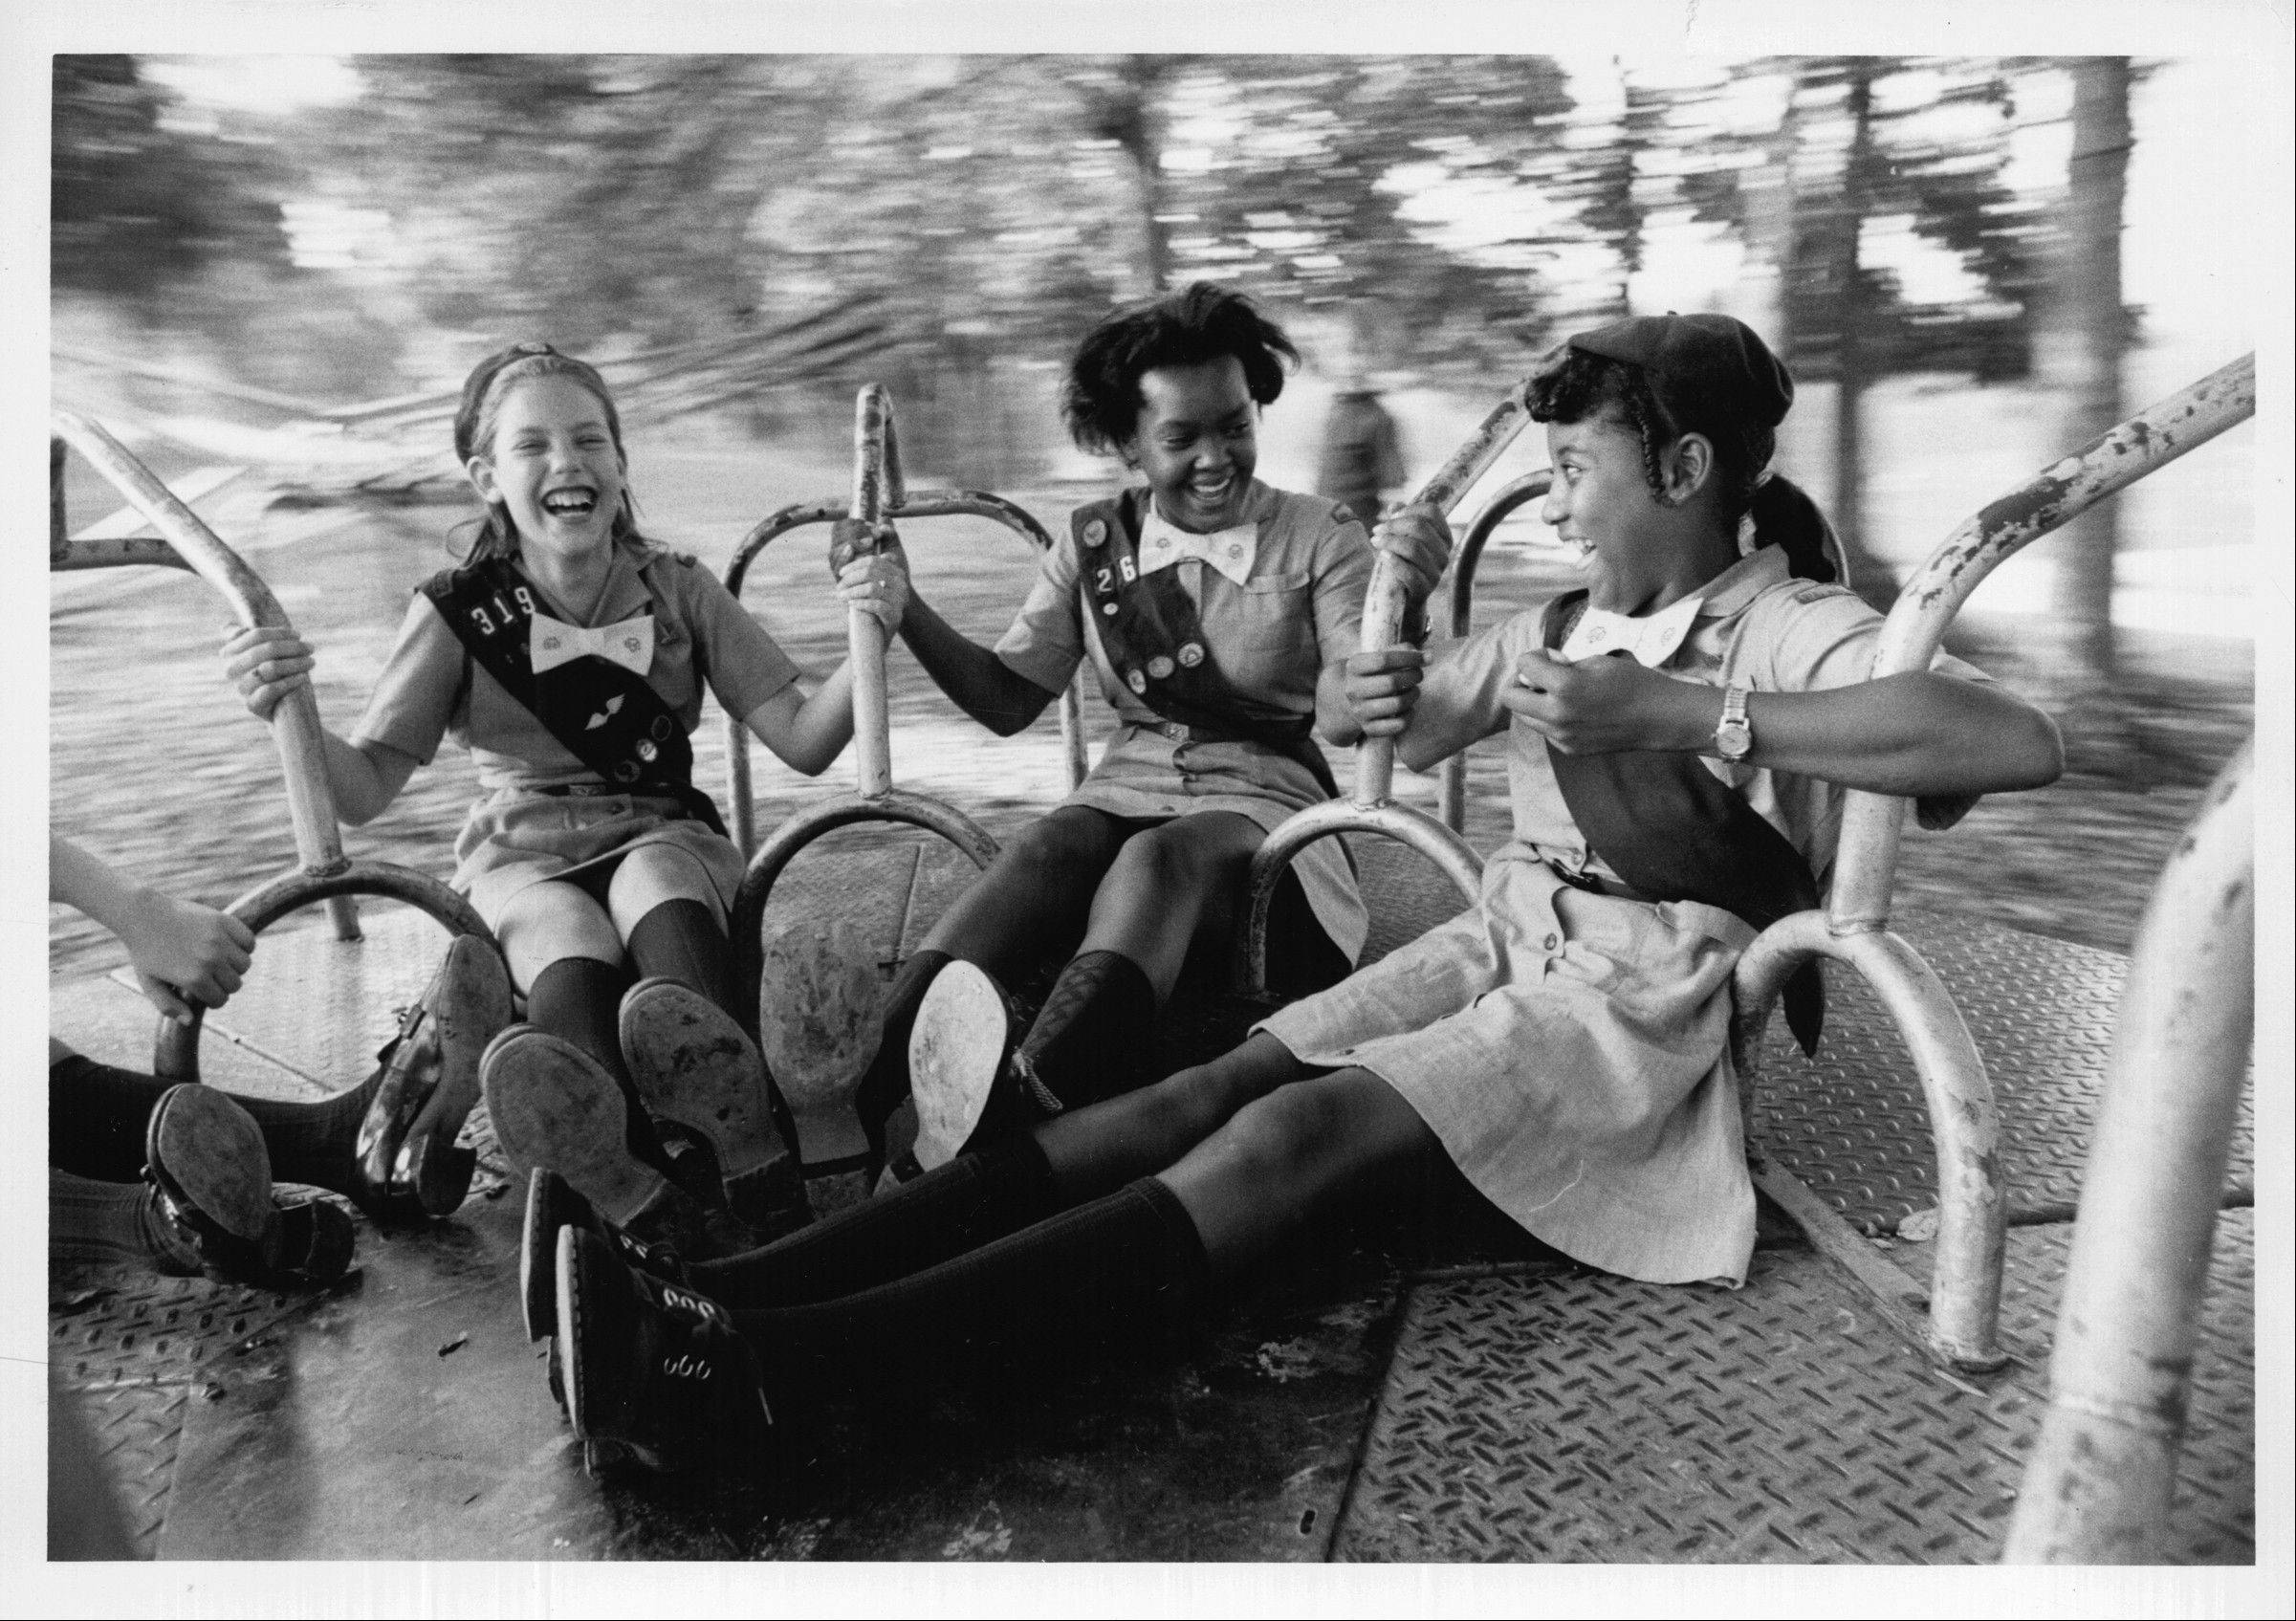 Girl Scouts has allowed girls to form friendships and have fun, like these Juniors in the 1970s, while learning about careers and community service.